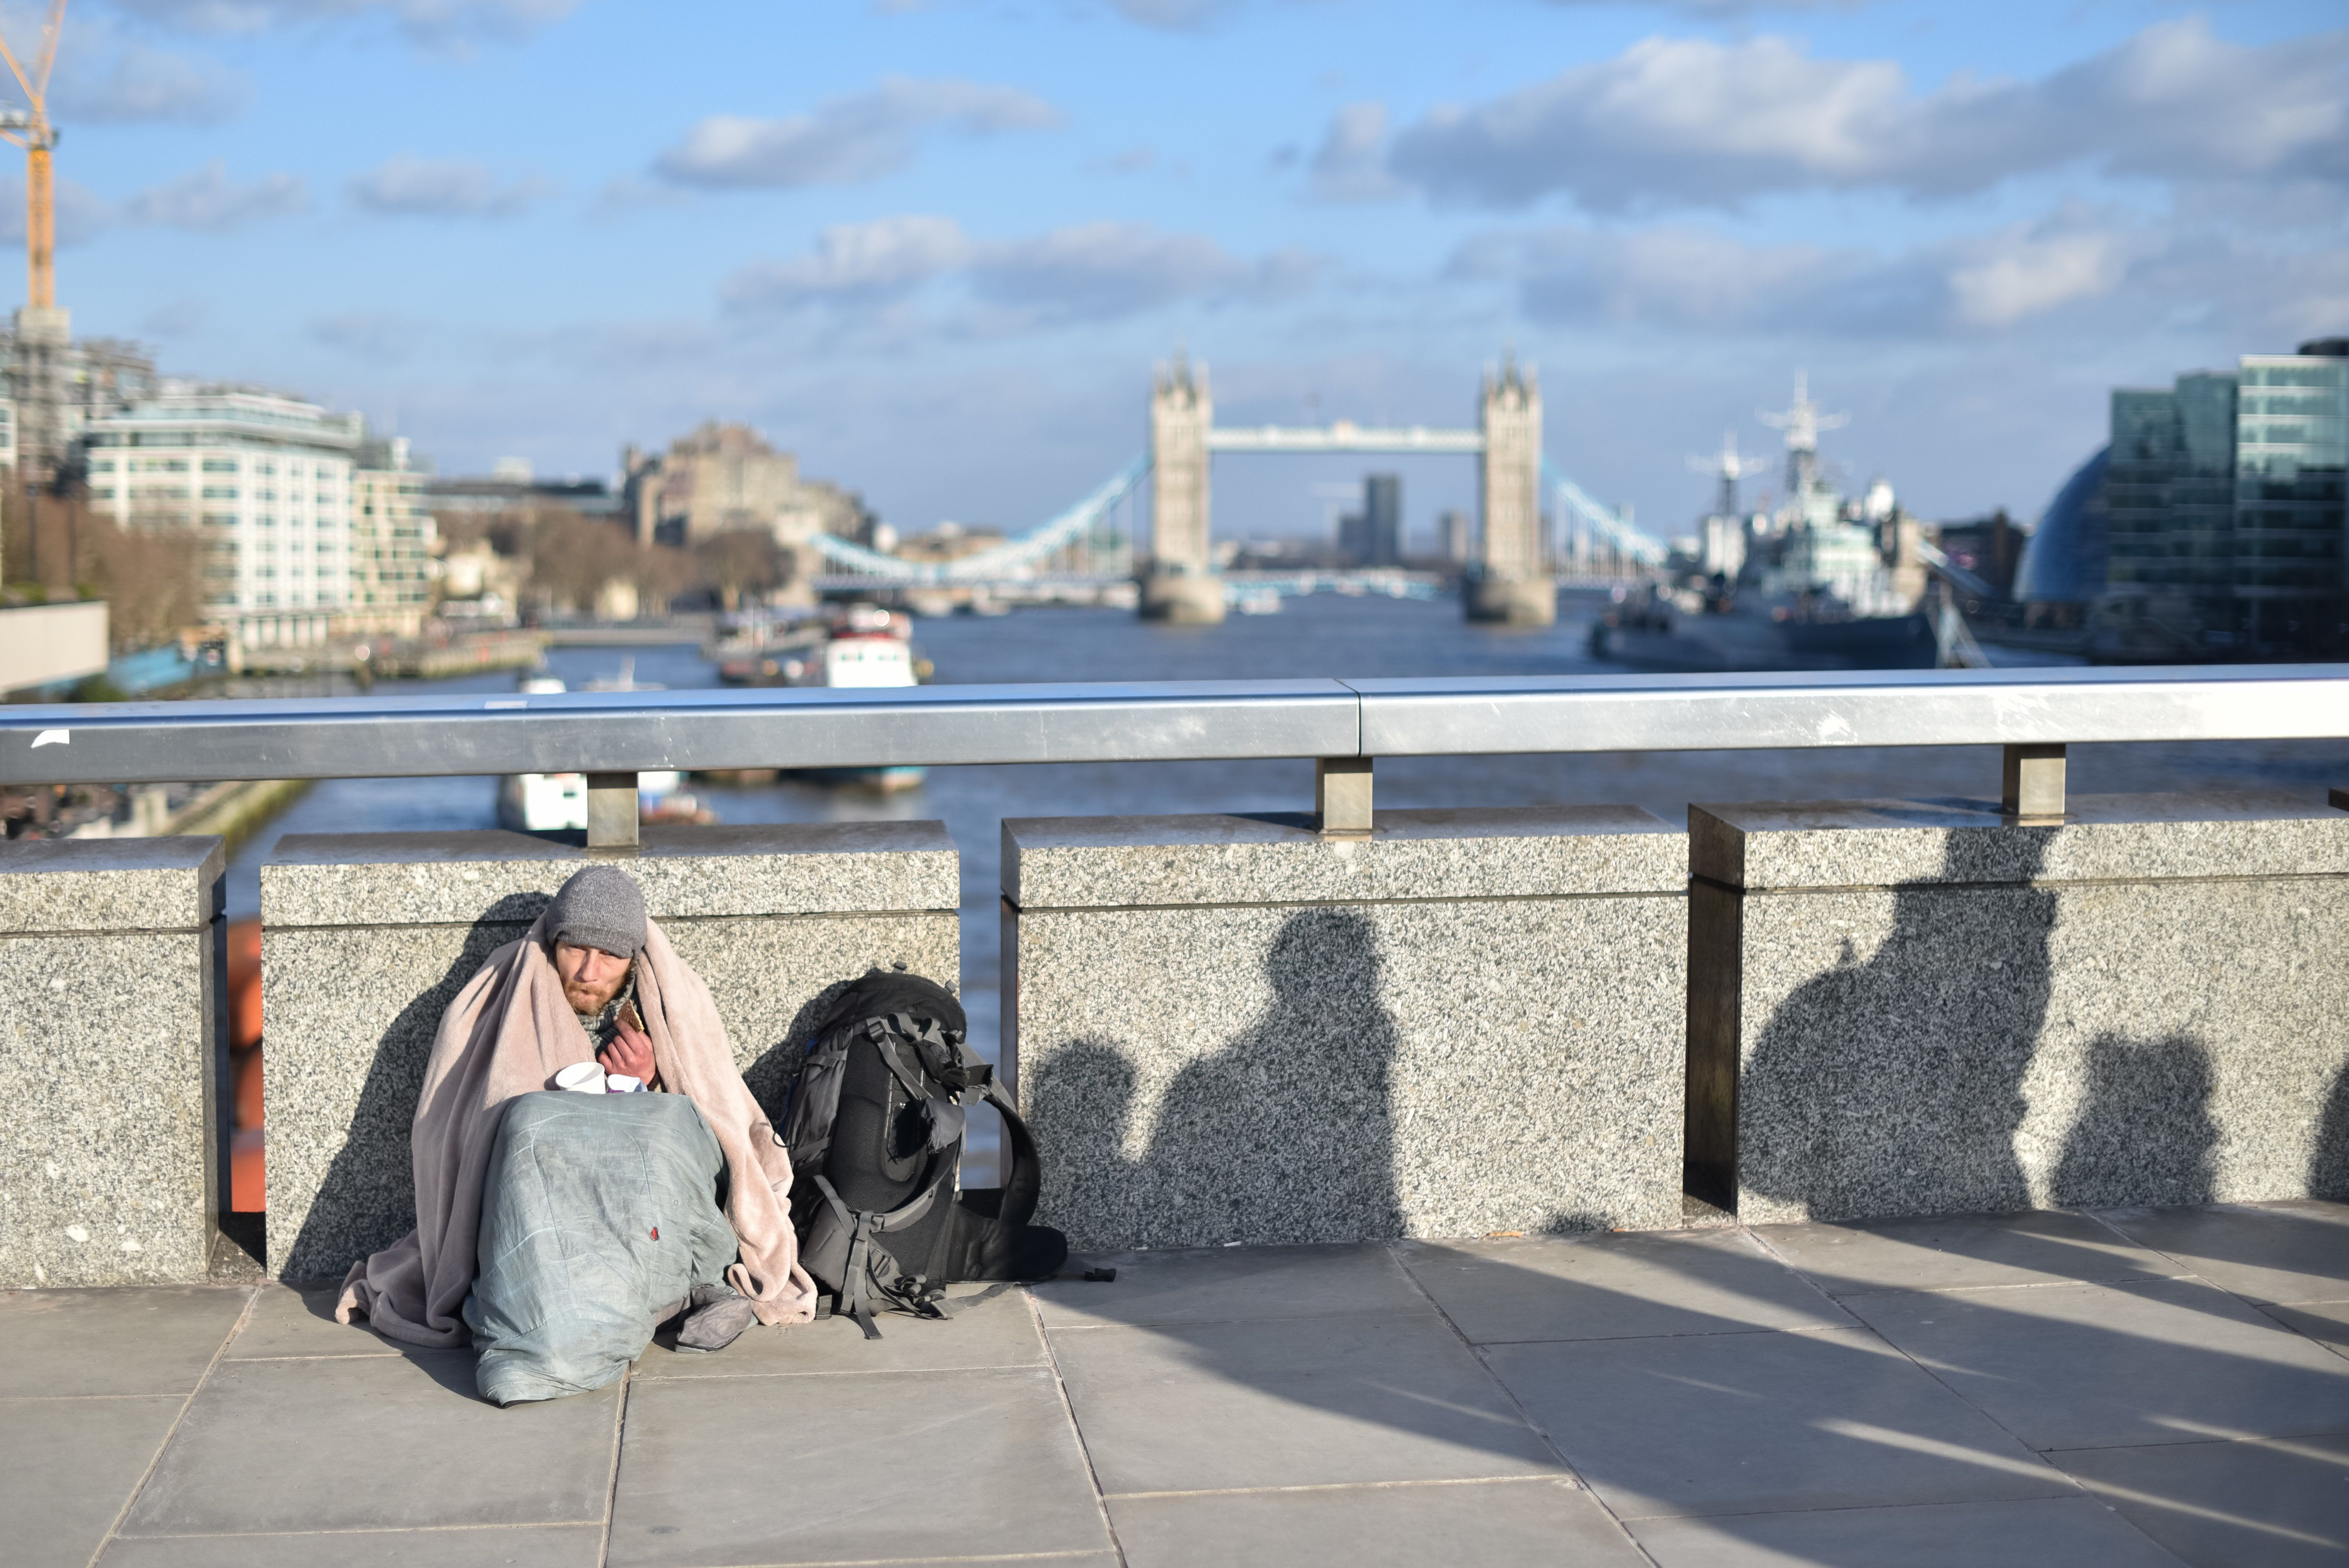 Homeless People Suffering Sunburn And Dehydration In Ongoing Hot